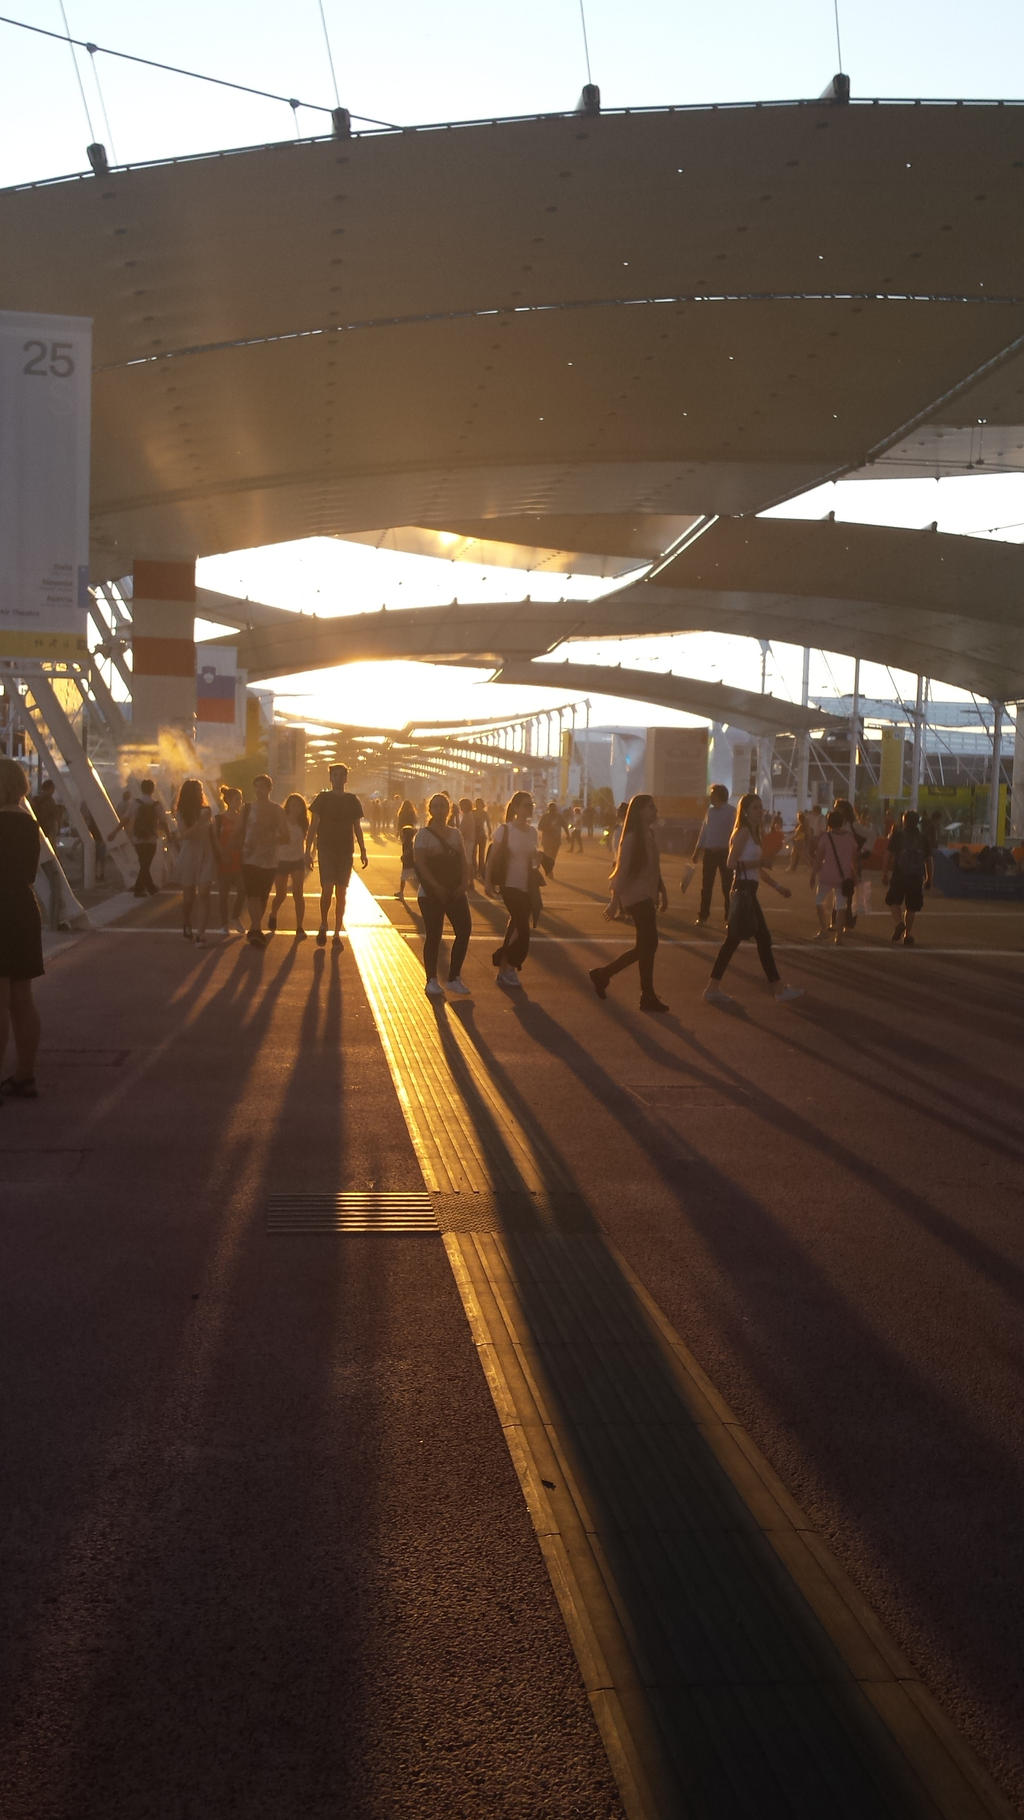 expo sunset by solstiziodinverno